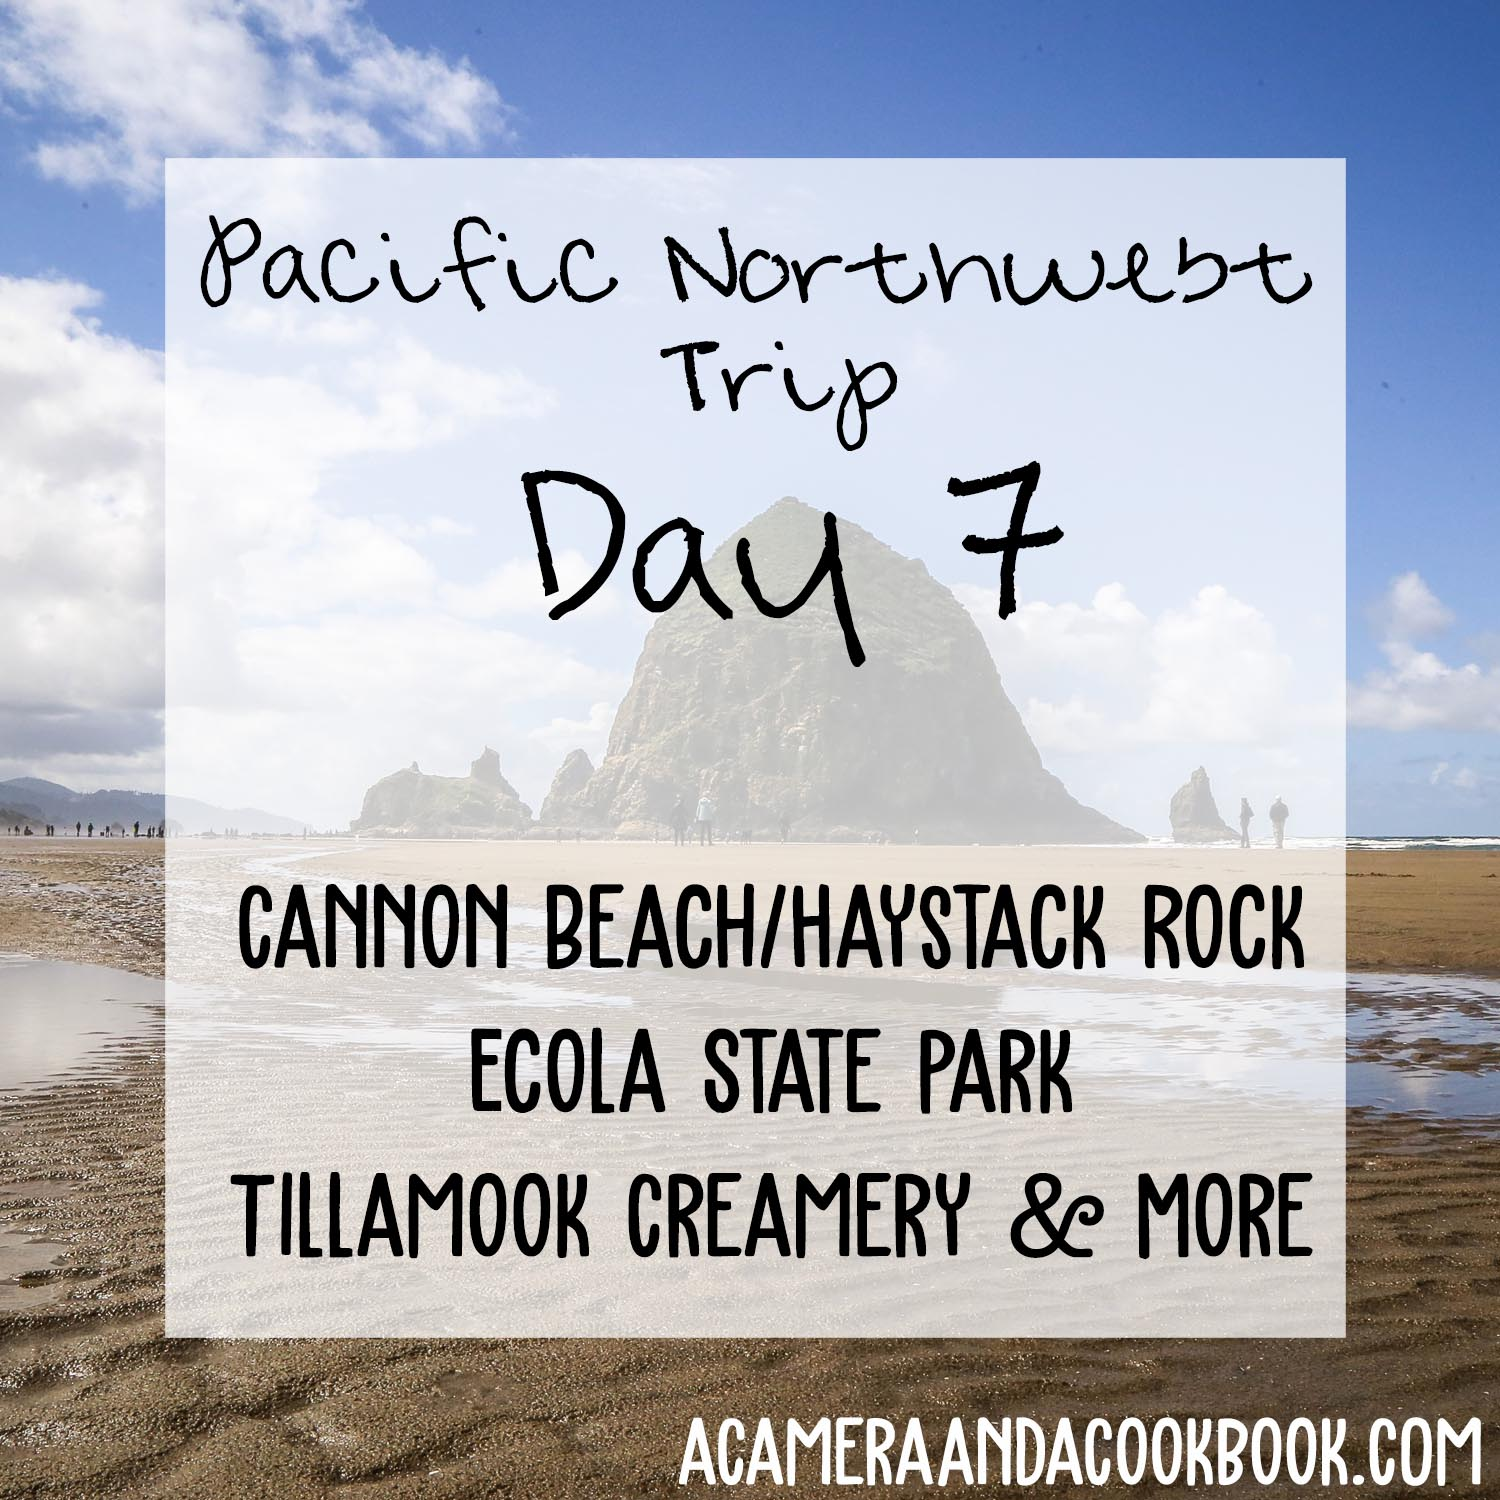 Pacific NW Trip: Day 7